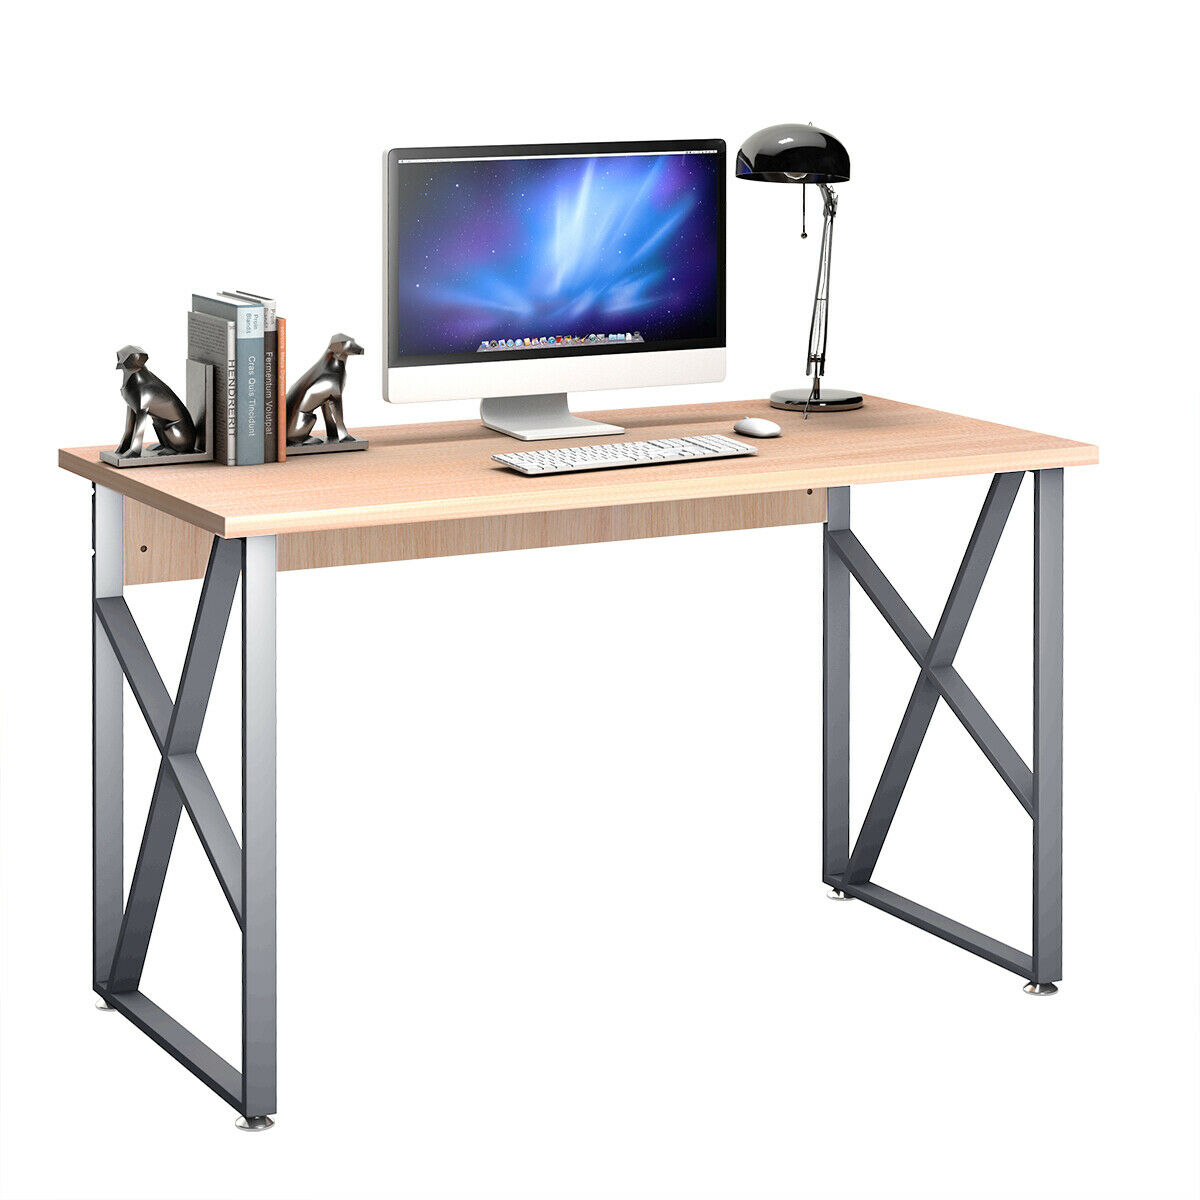 Costway Computer Desk PC Laptop Table Writing Study Workstation Home Office  Furniture   Walmart.com